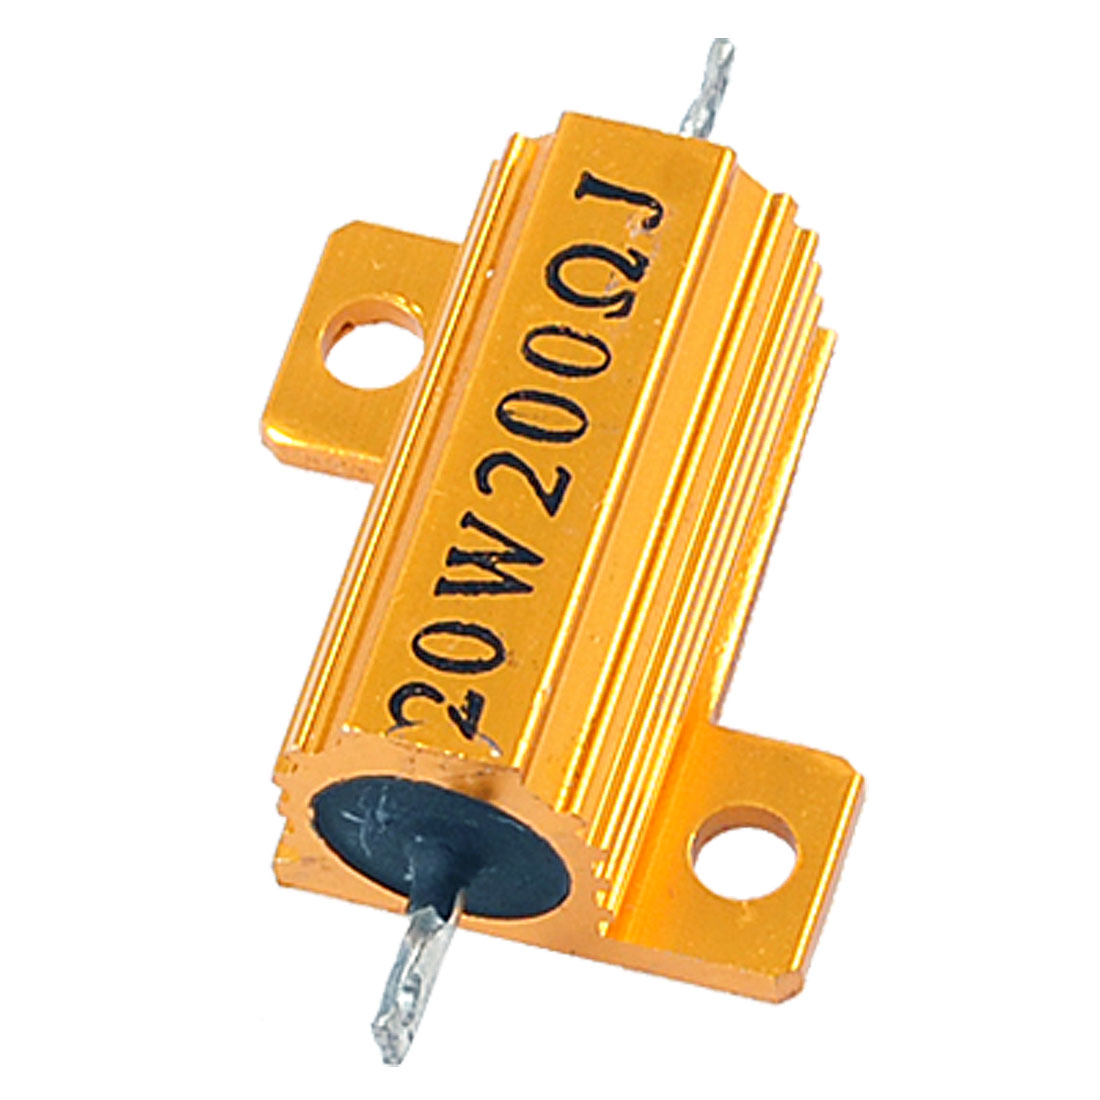 20W 200ohm Wirewound Gold Tone Aluminum Housed Resistor